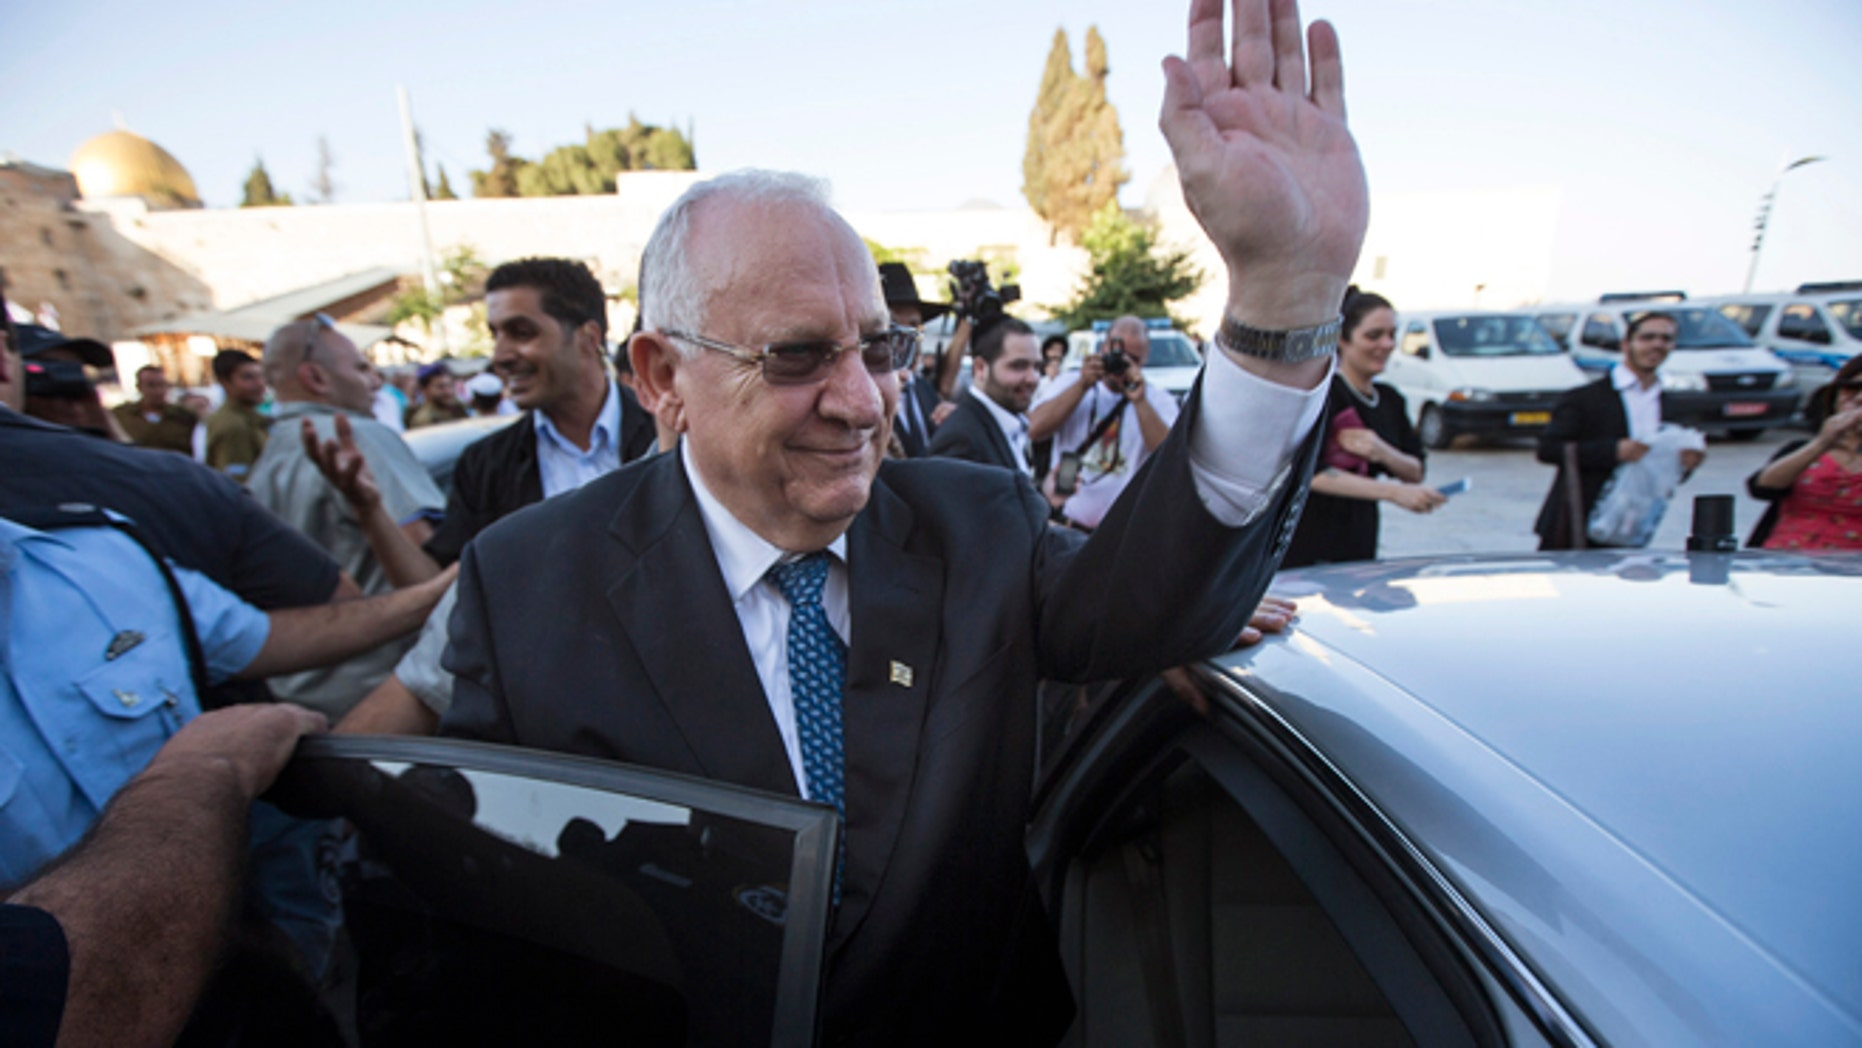 June 10, 2014: Reuven Rivlin a former speaker of parliament and the newly elected Israeli president waves to well-wishers after visiting the Western Wall, Judaism's holiest prayer site, in Jerusalem's Old City. (Reuters)